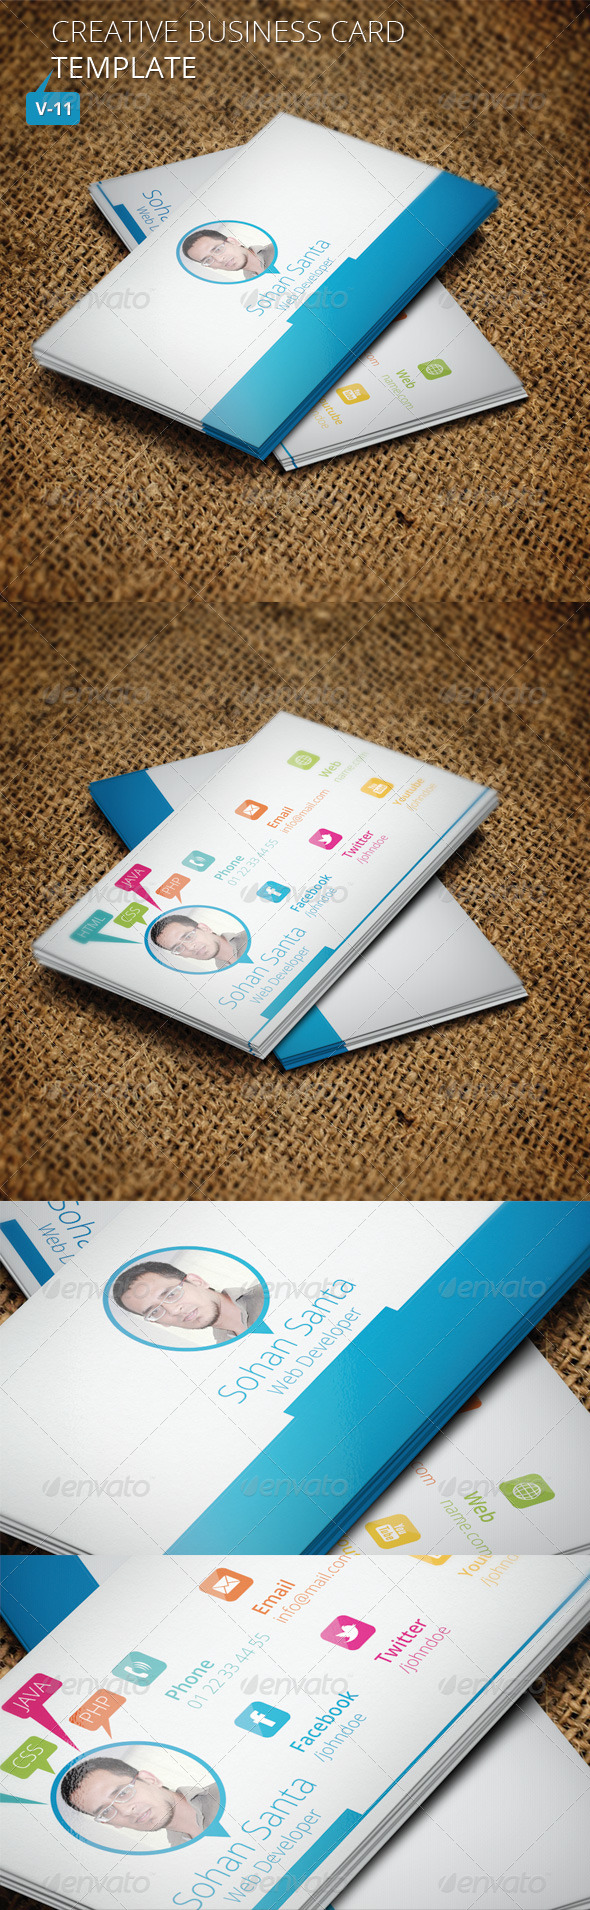 Creative Business Card V 11